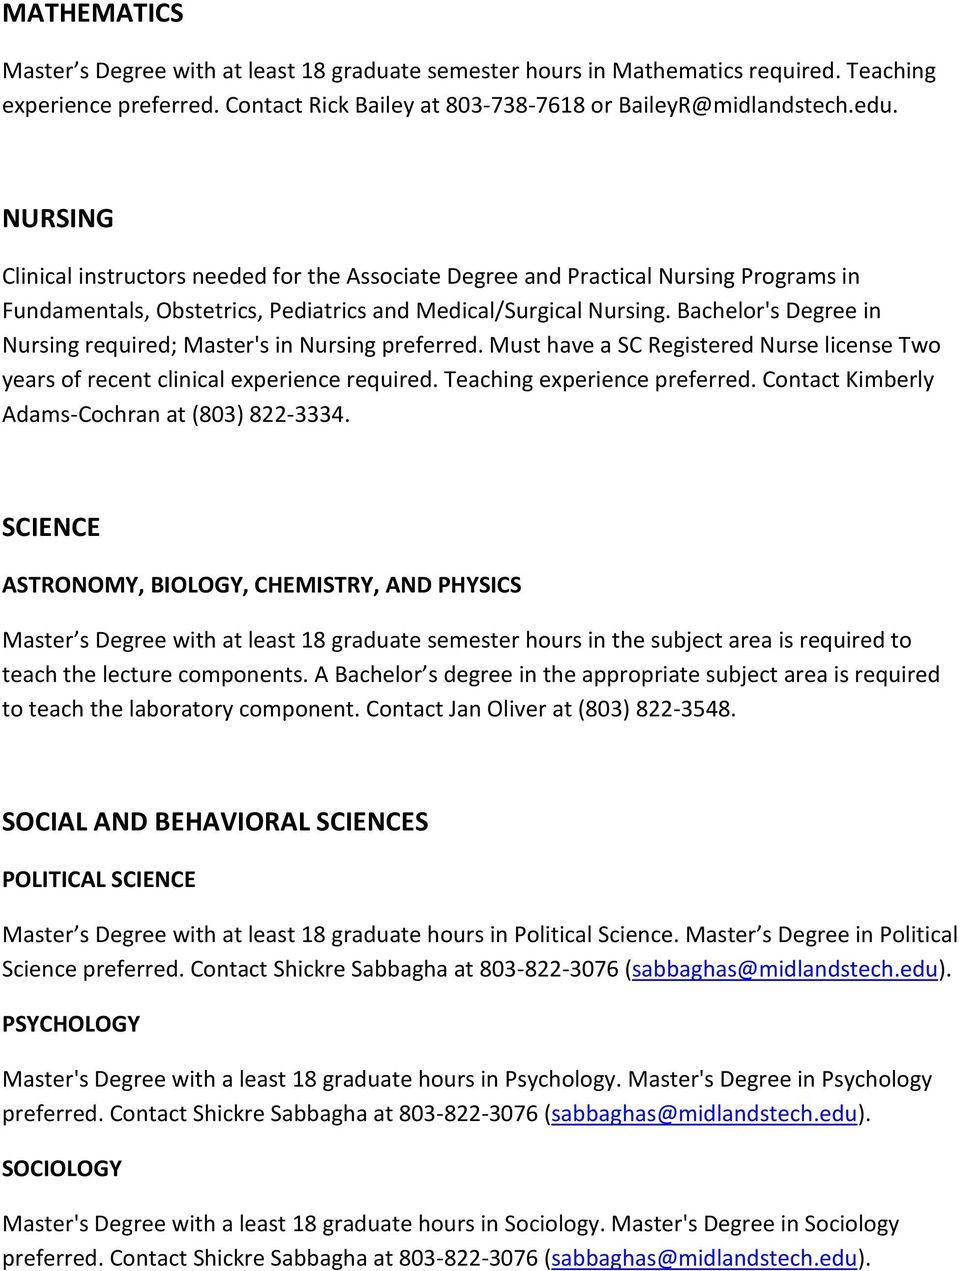 Bachelor's Degree in Nursing required; Master's in Nursing preferred. Must have a SC Registered Nurse license Two years of recent clinical experience required. Teaching experience preferred.